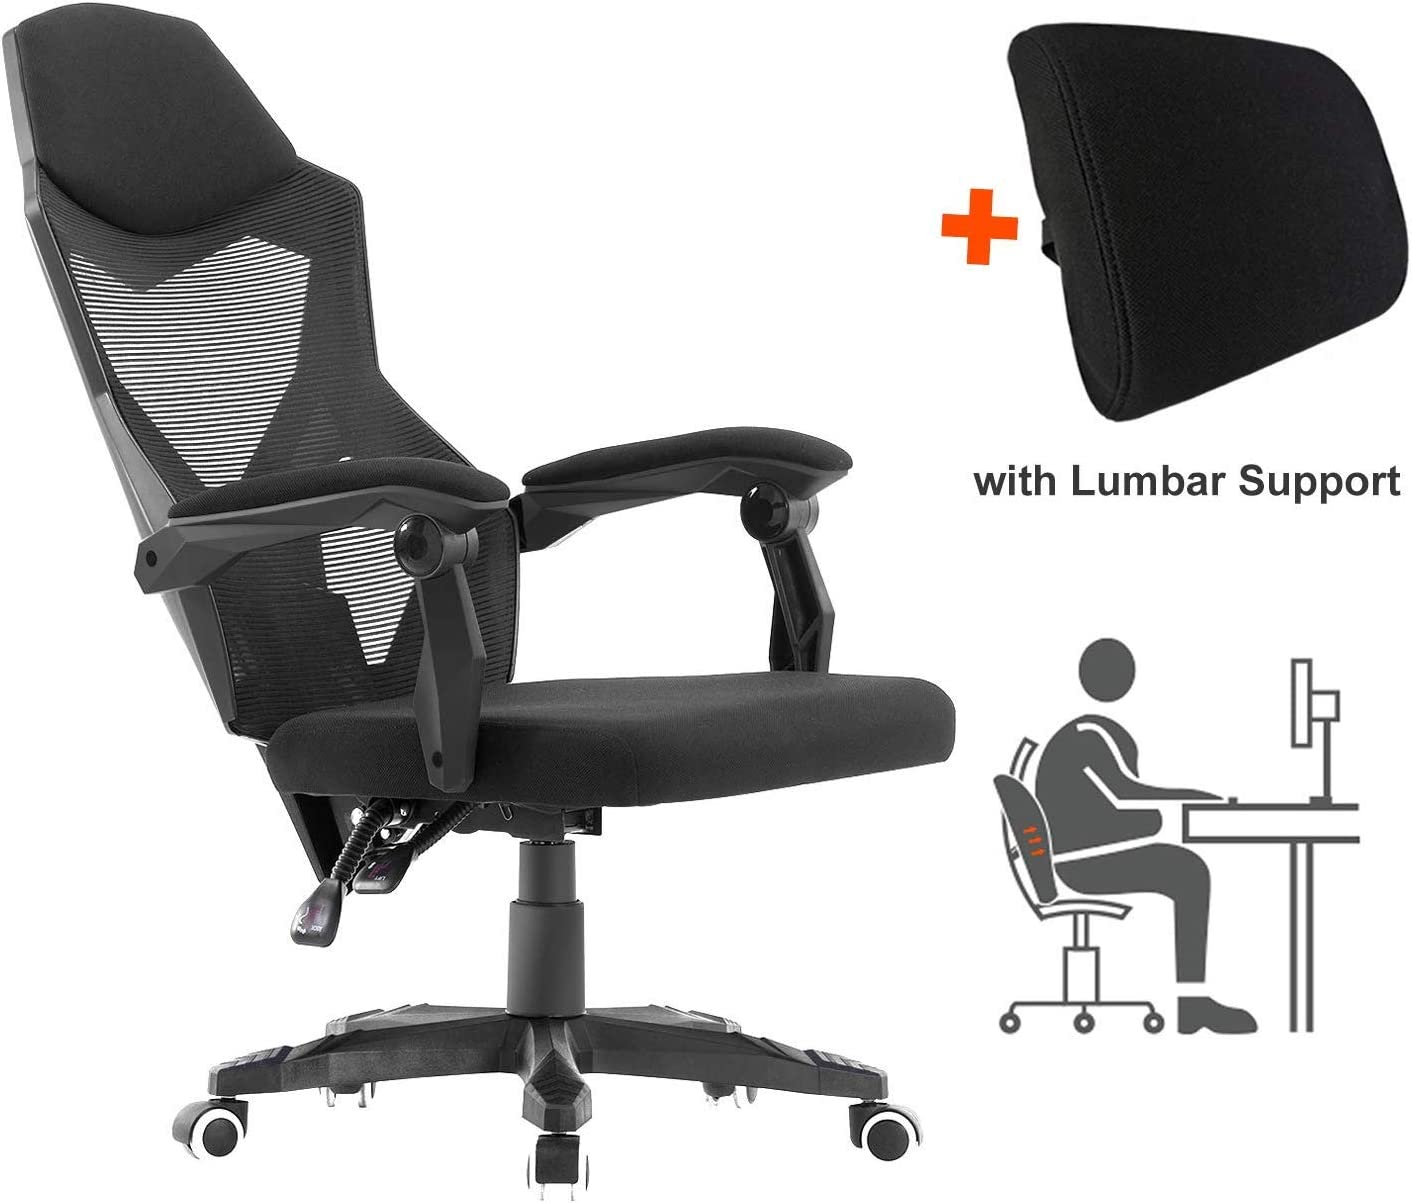 HOMEFUN Ergonomic Office Chair, High Back Adjustable Desk Task Chair with Armrests Black with Lumbar Support